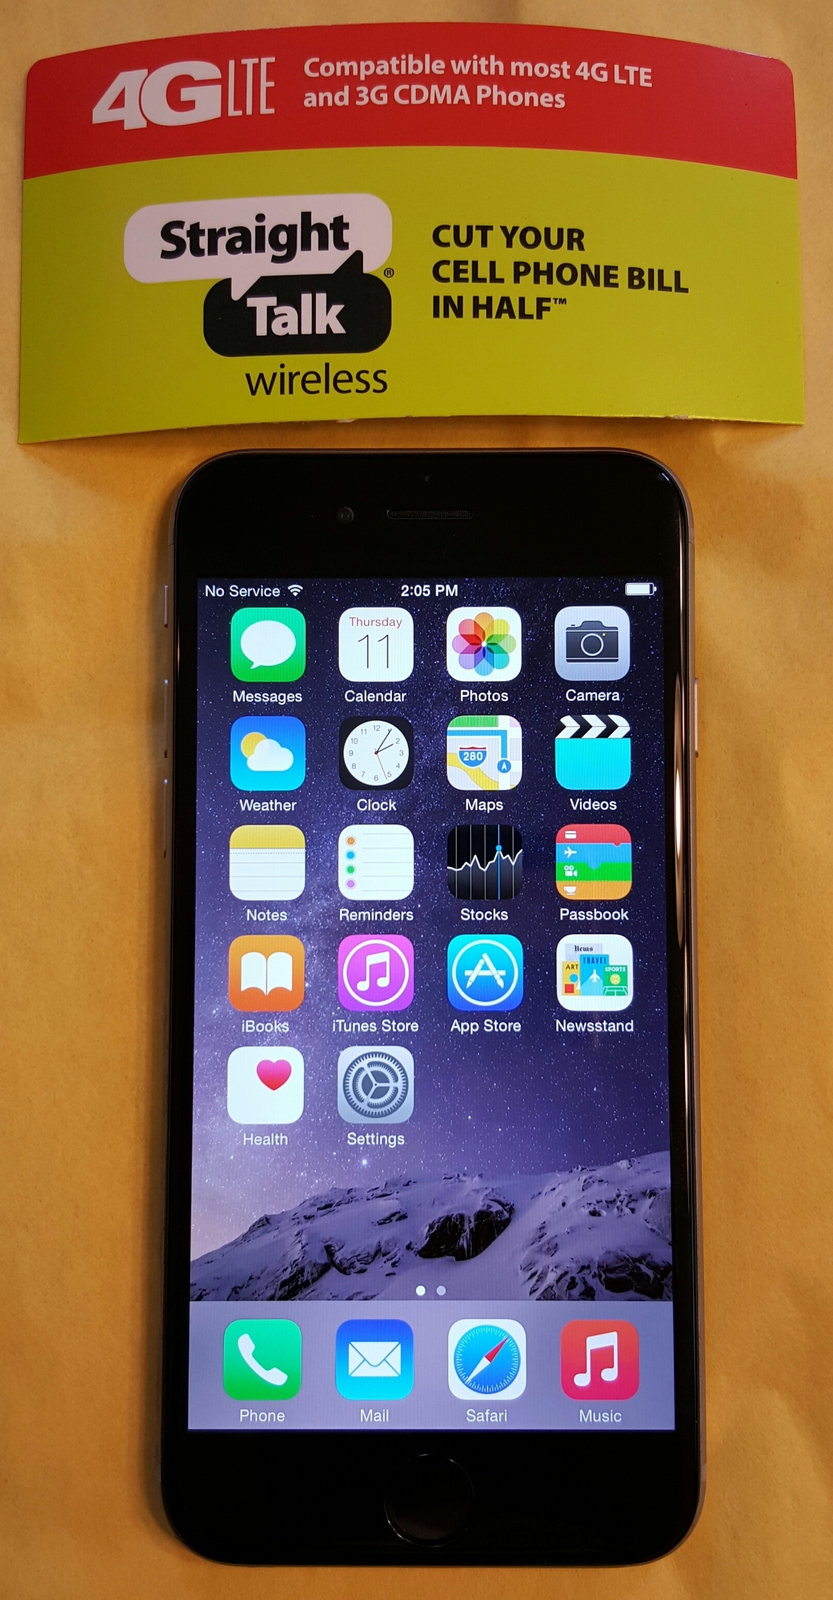 iphone 6 straight talk iphone 6 gray 16gb for staight talk at amp t 4g lte 15089